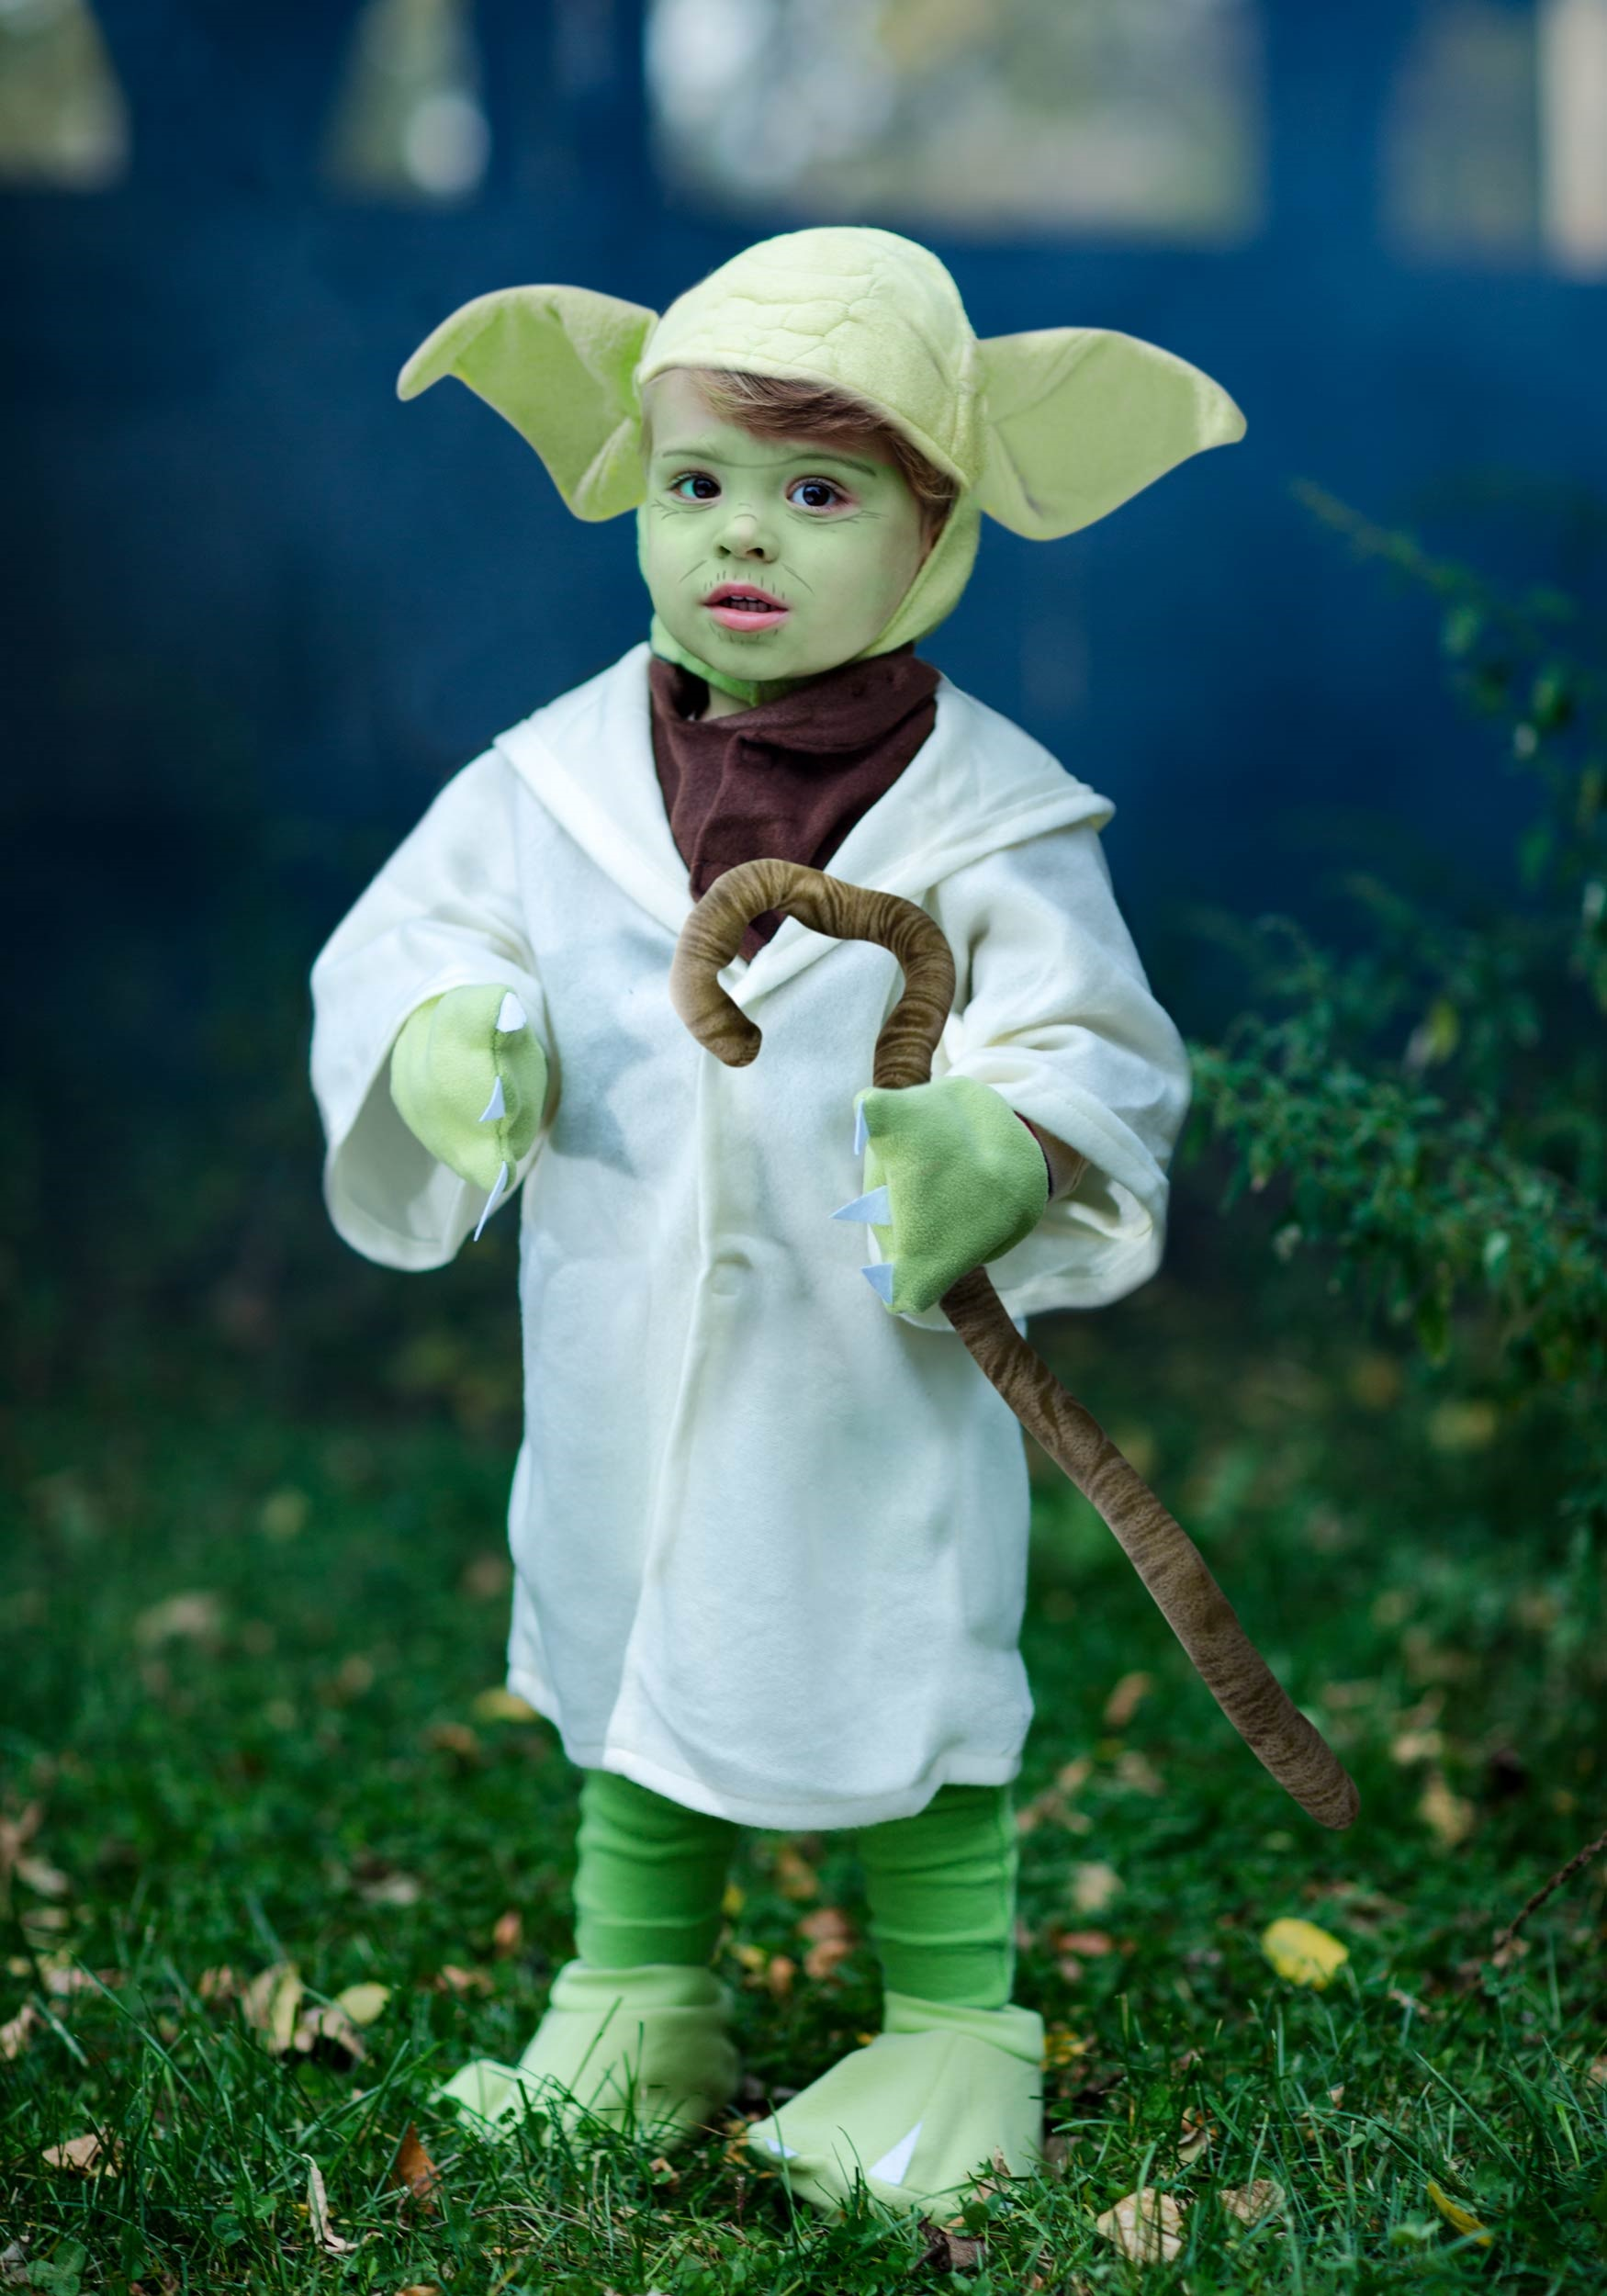 Infant Baby Girl Gifts Toddler Yoda Costume From Star Wars